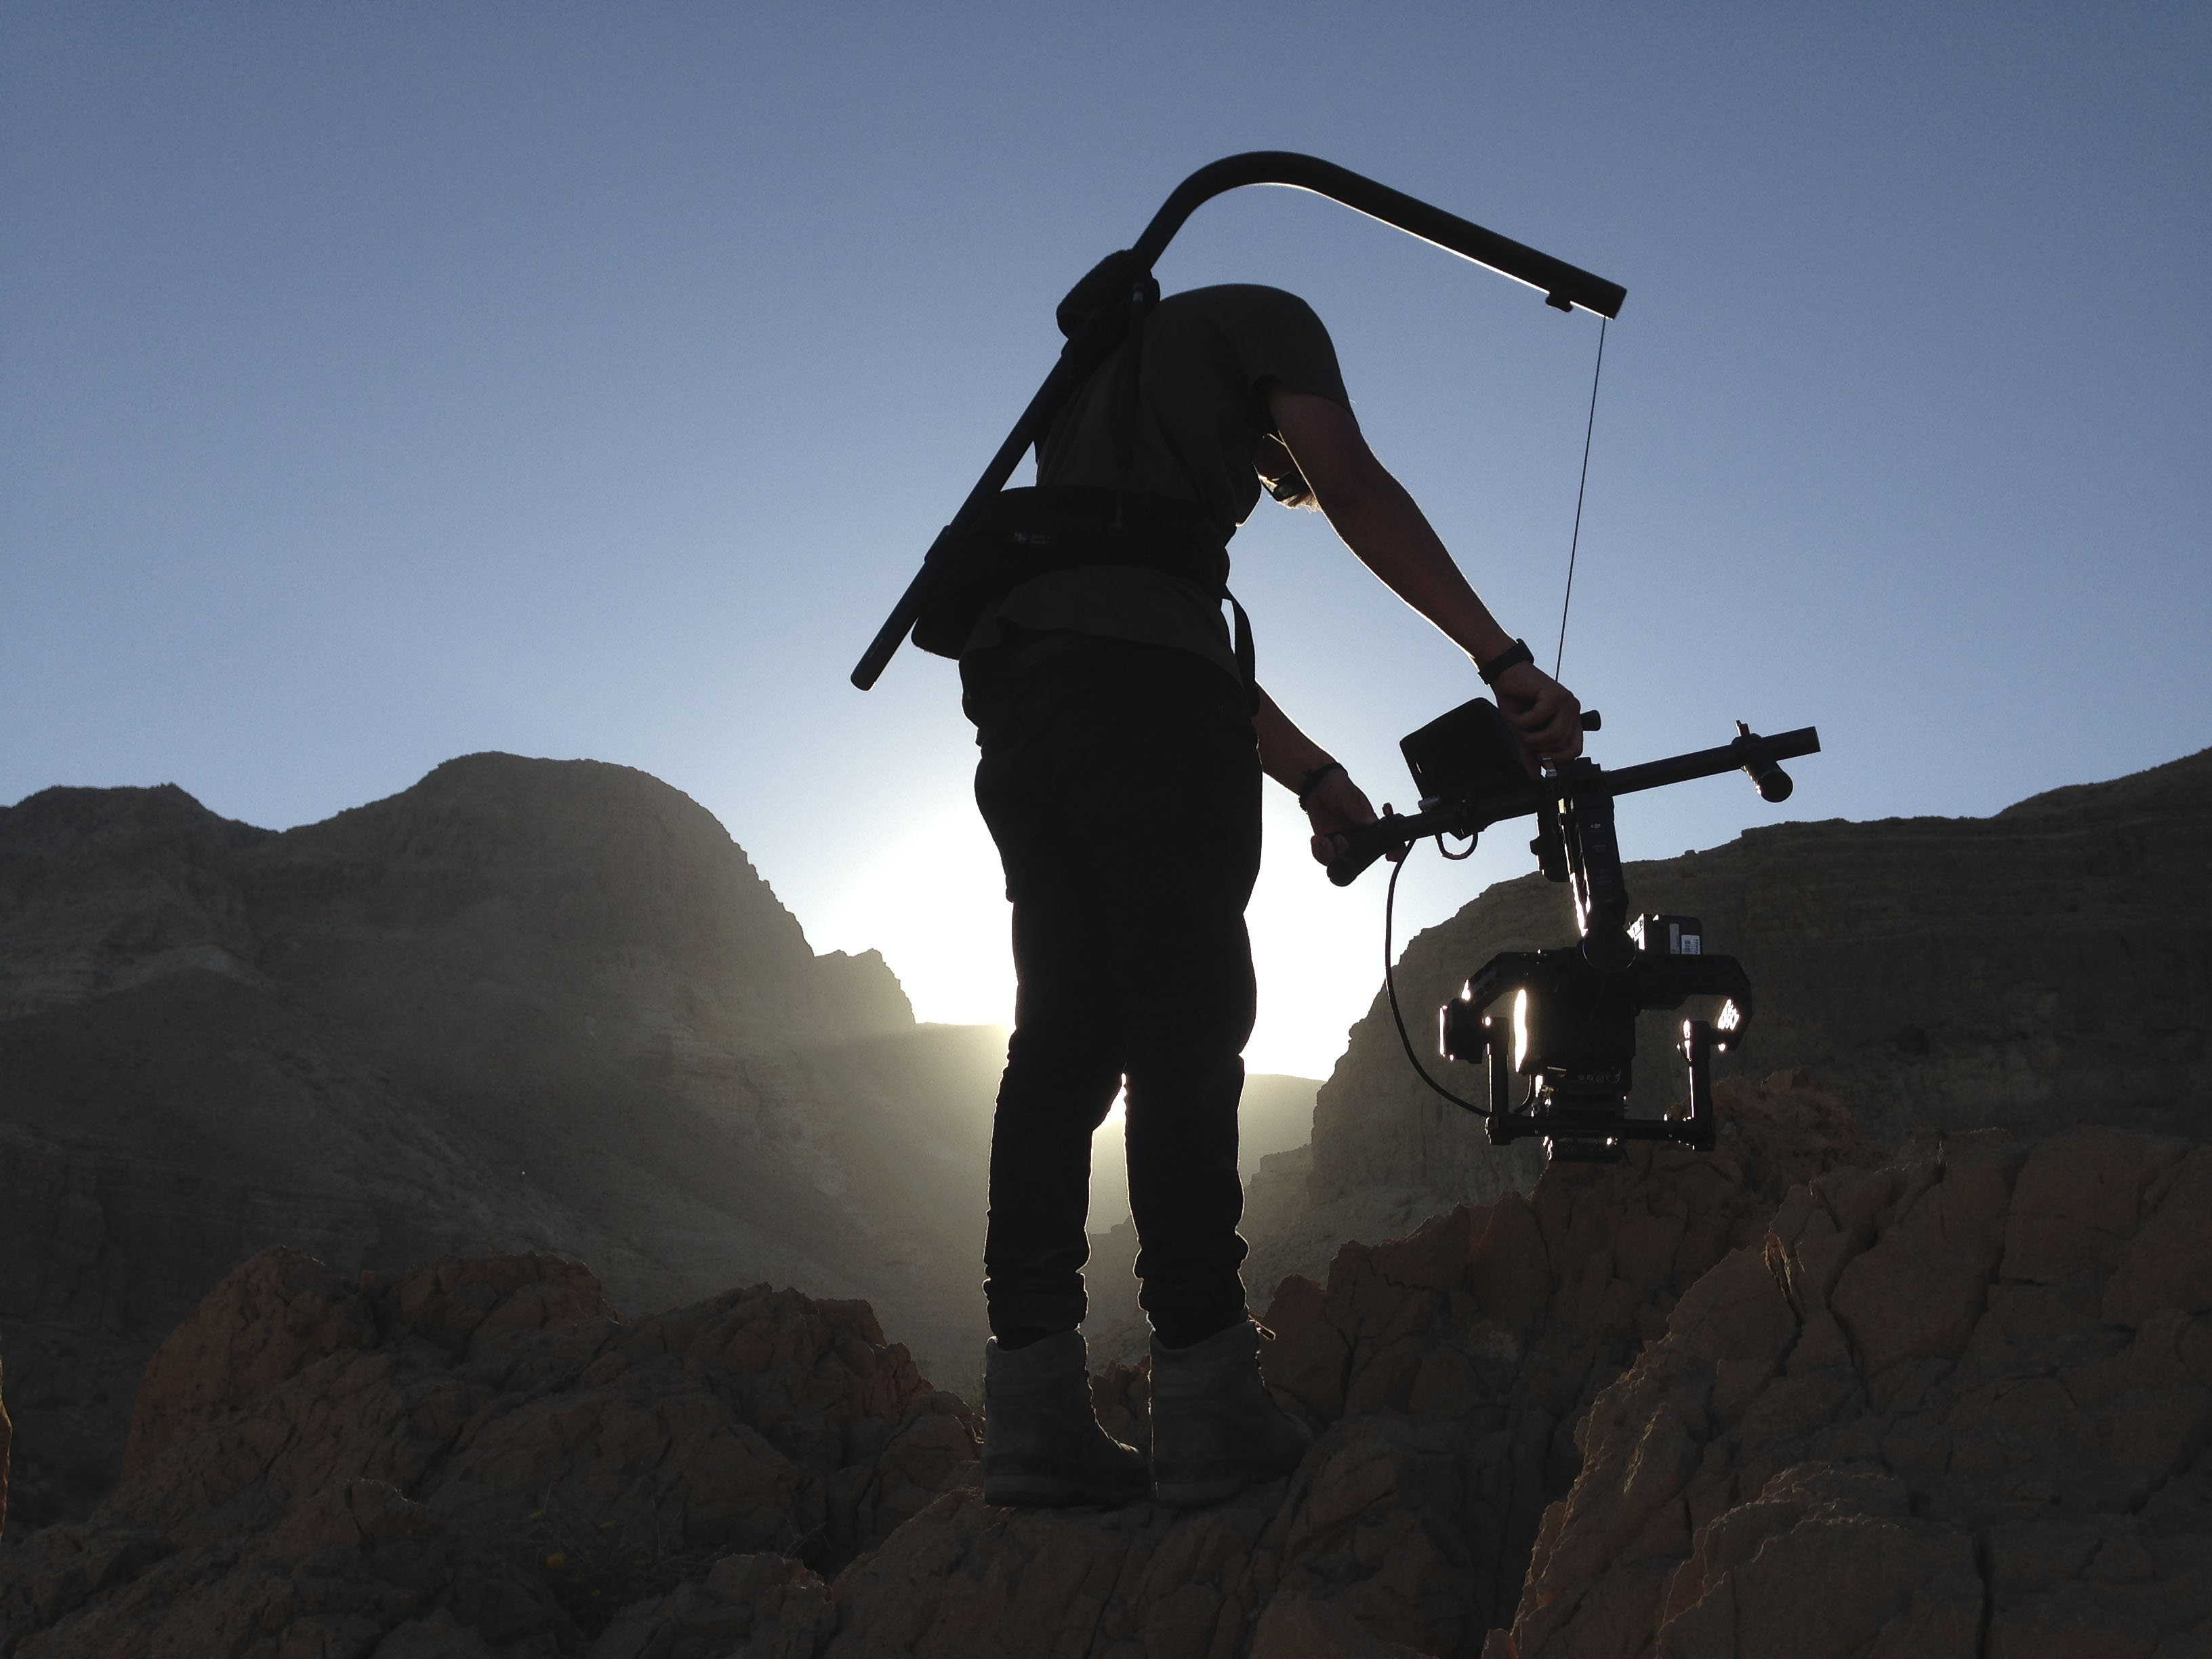 Cameraman filming in the mountains for Planet Earth 2